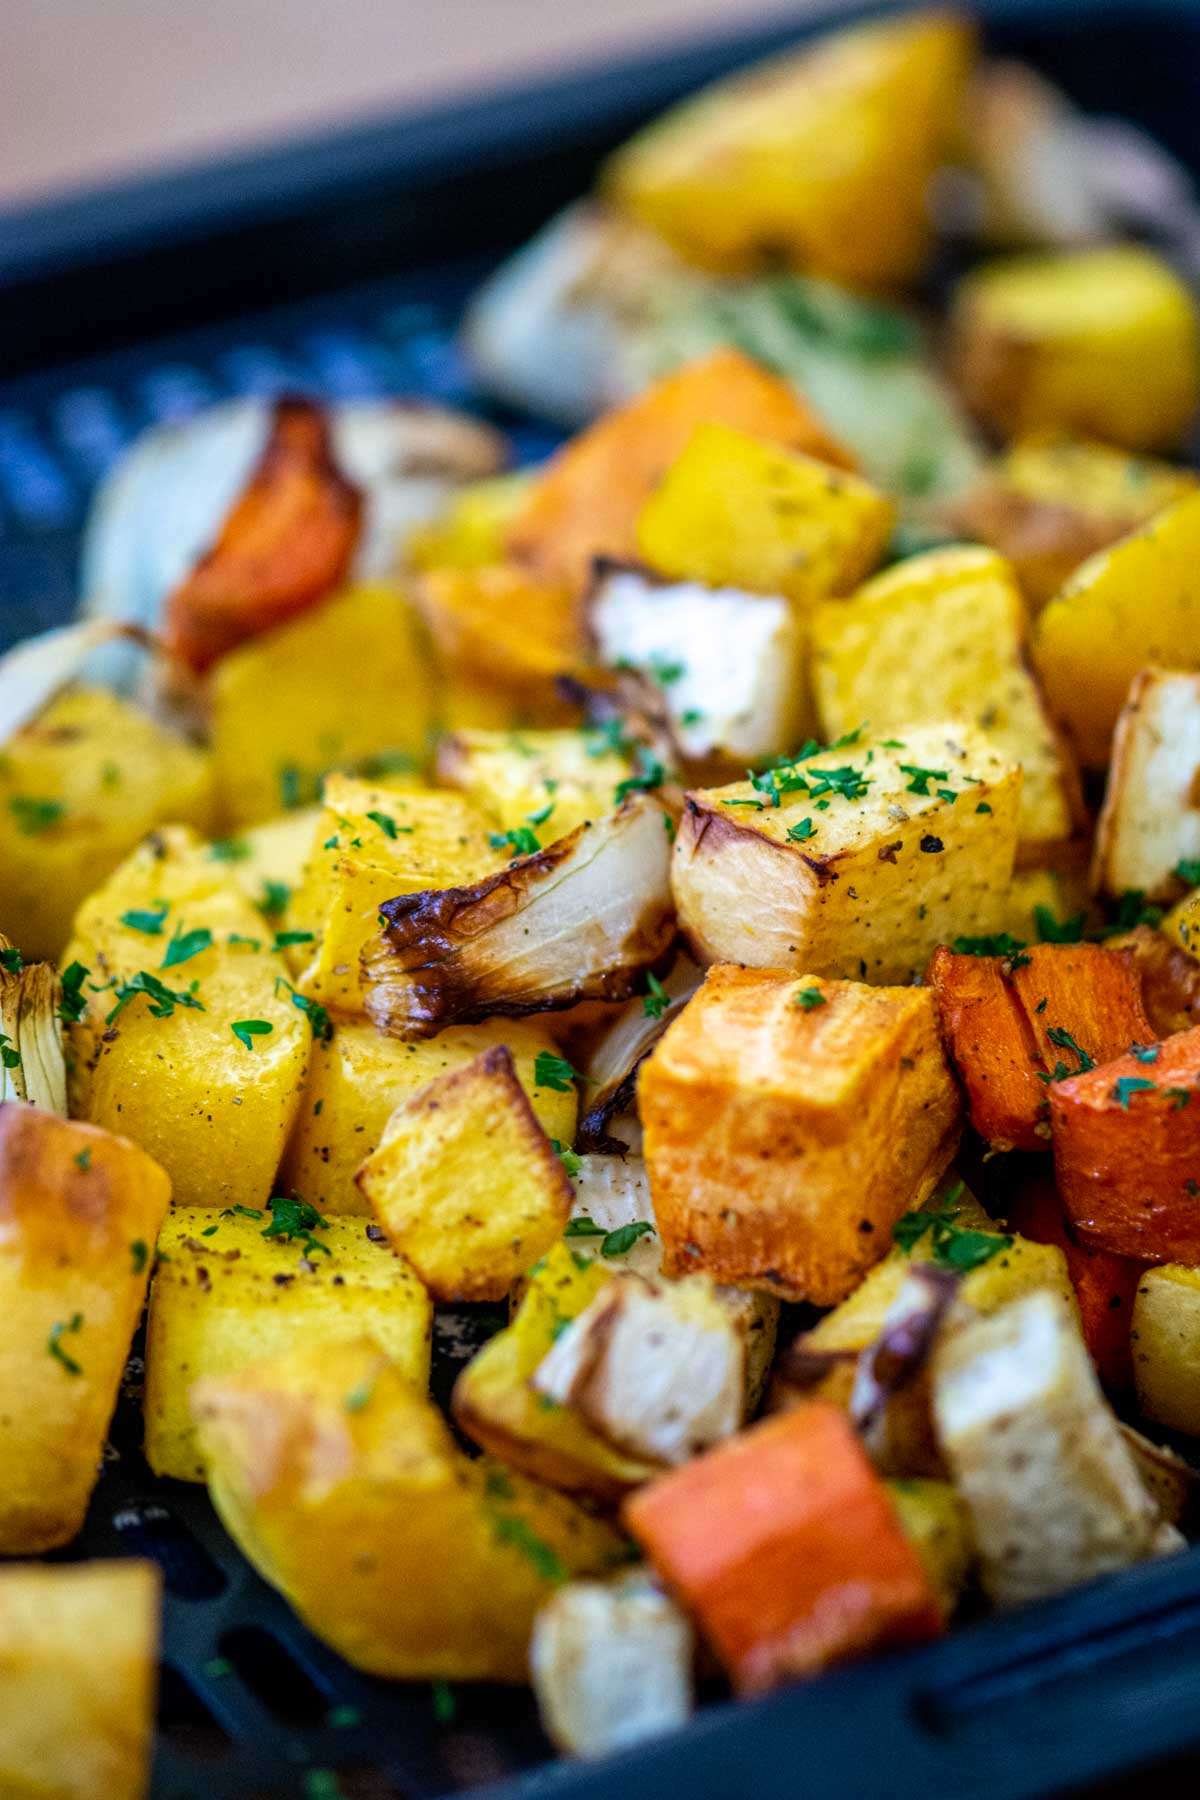 tray of air fryer roasted root vegetables with Parsley.